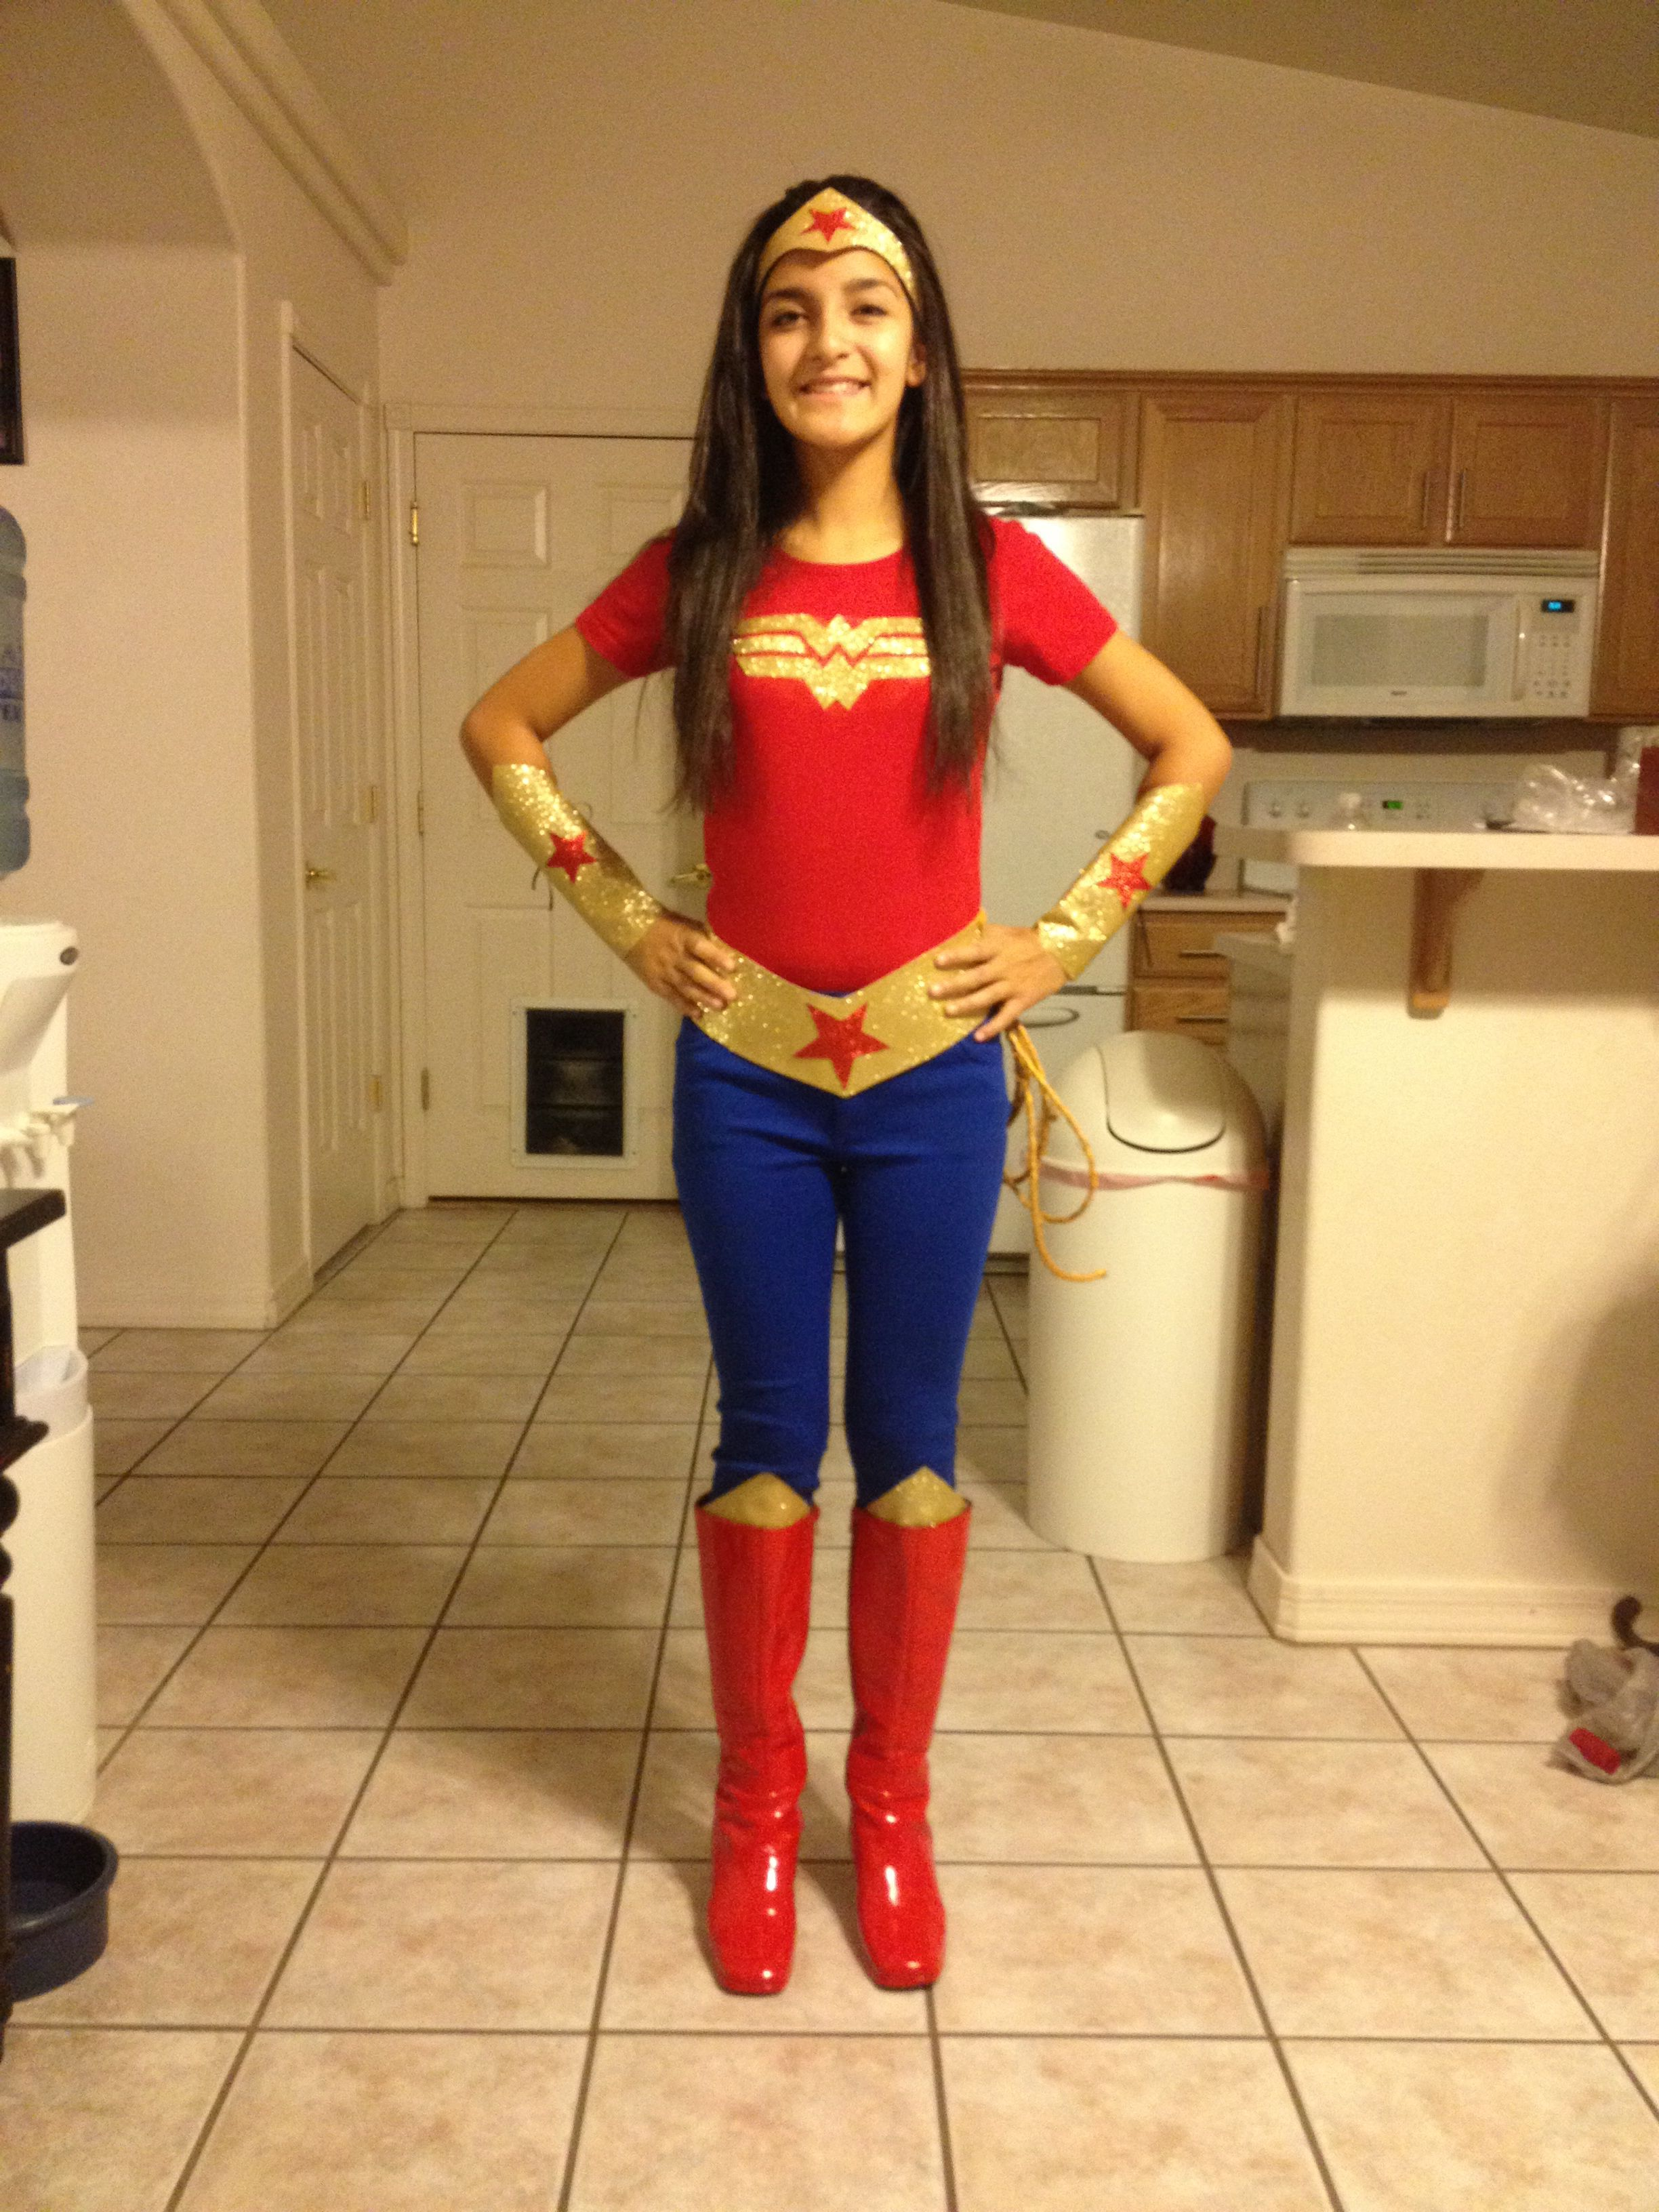 12+ diy superhero costume ideas for kids | diy craft ideas